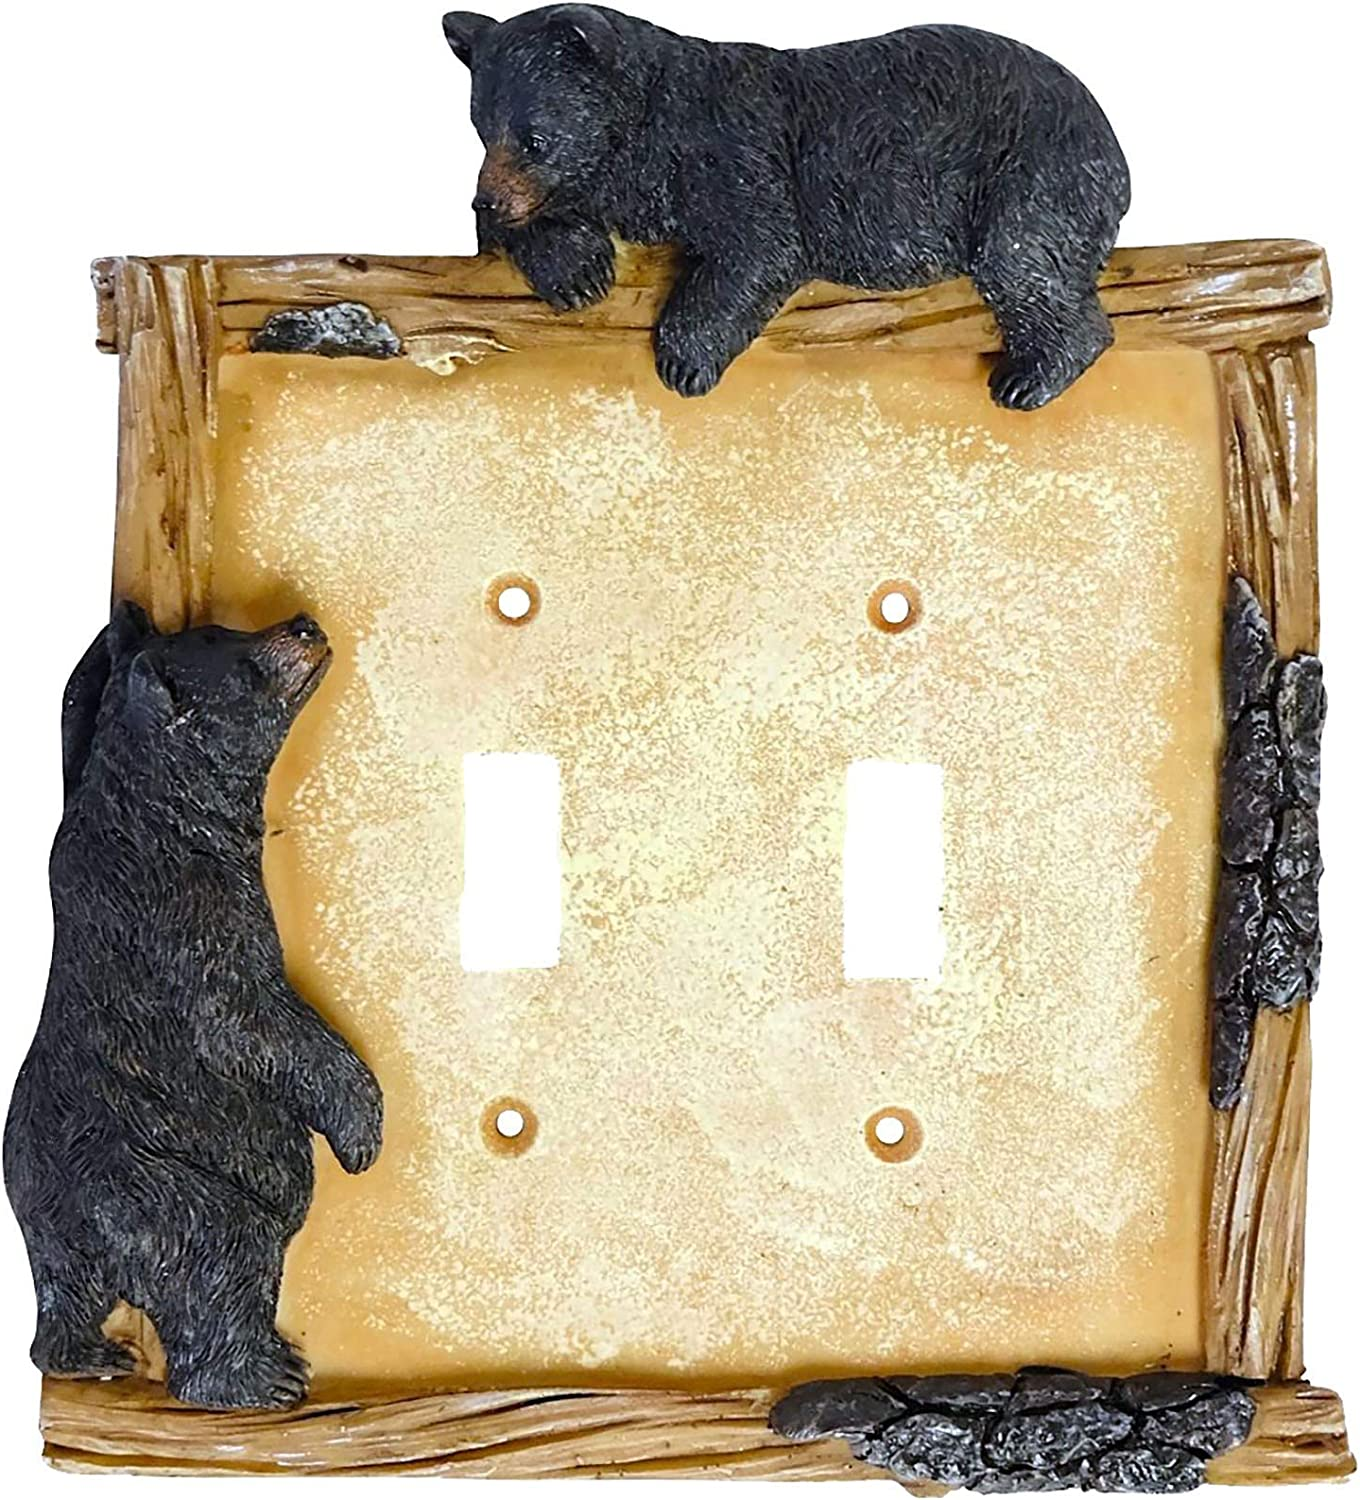 Black Bear on Log Double Switch Cover Cabin Lodge Style Home Décor